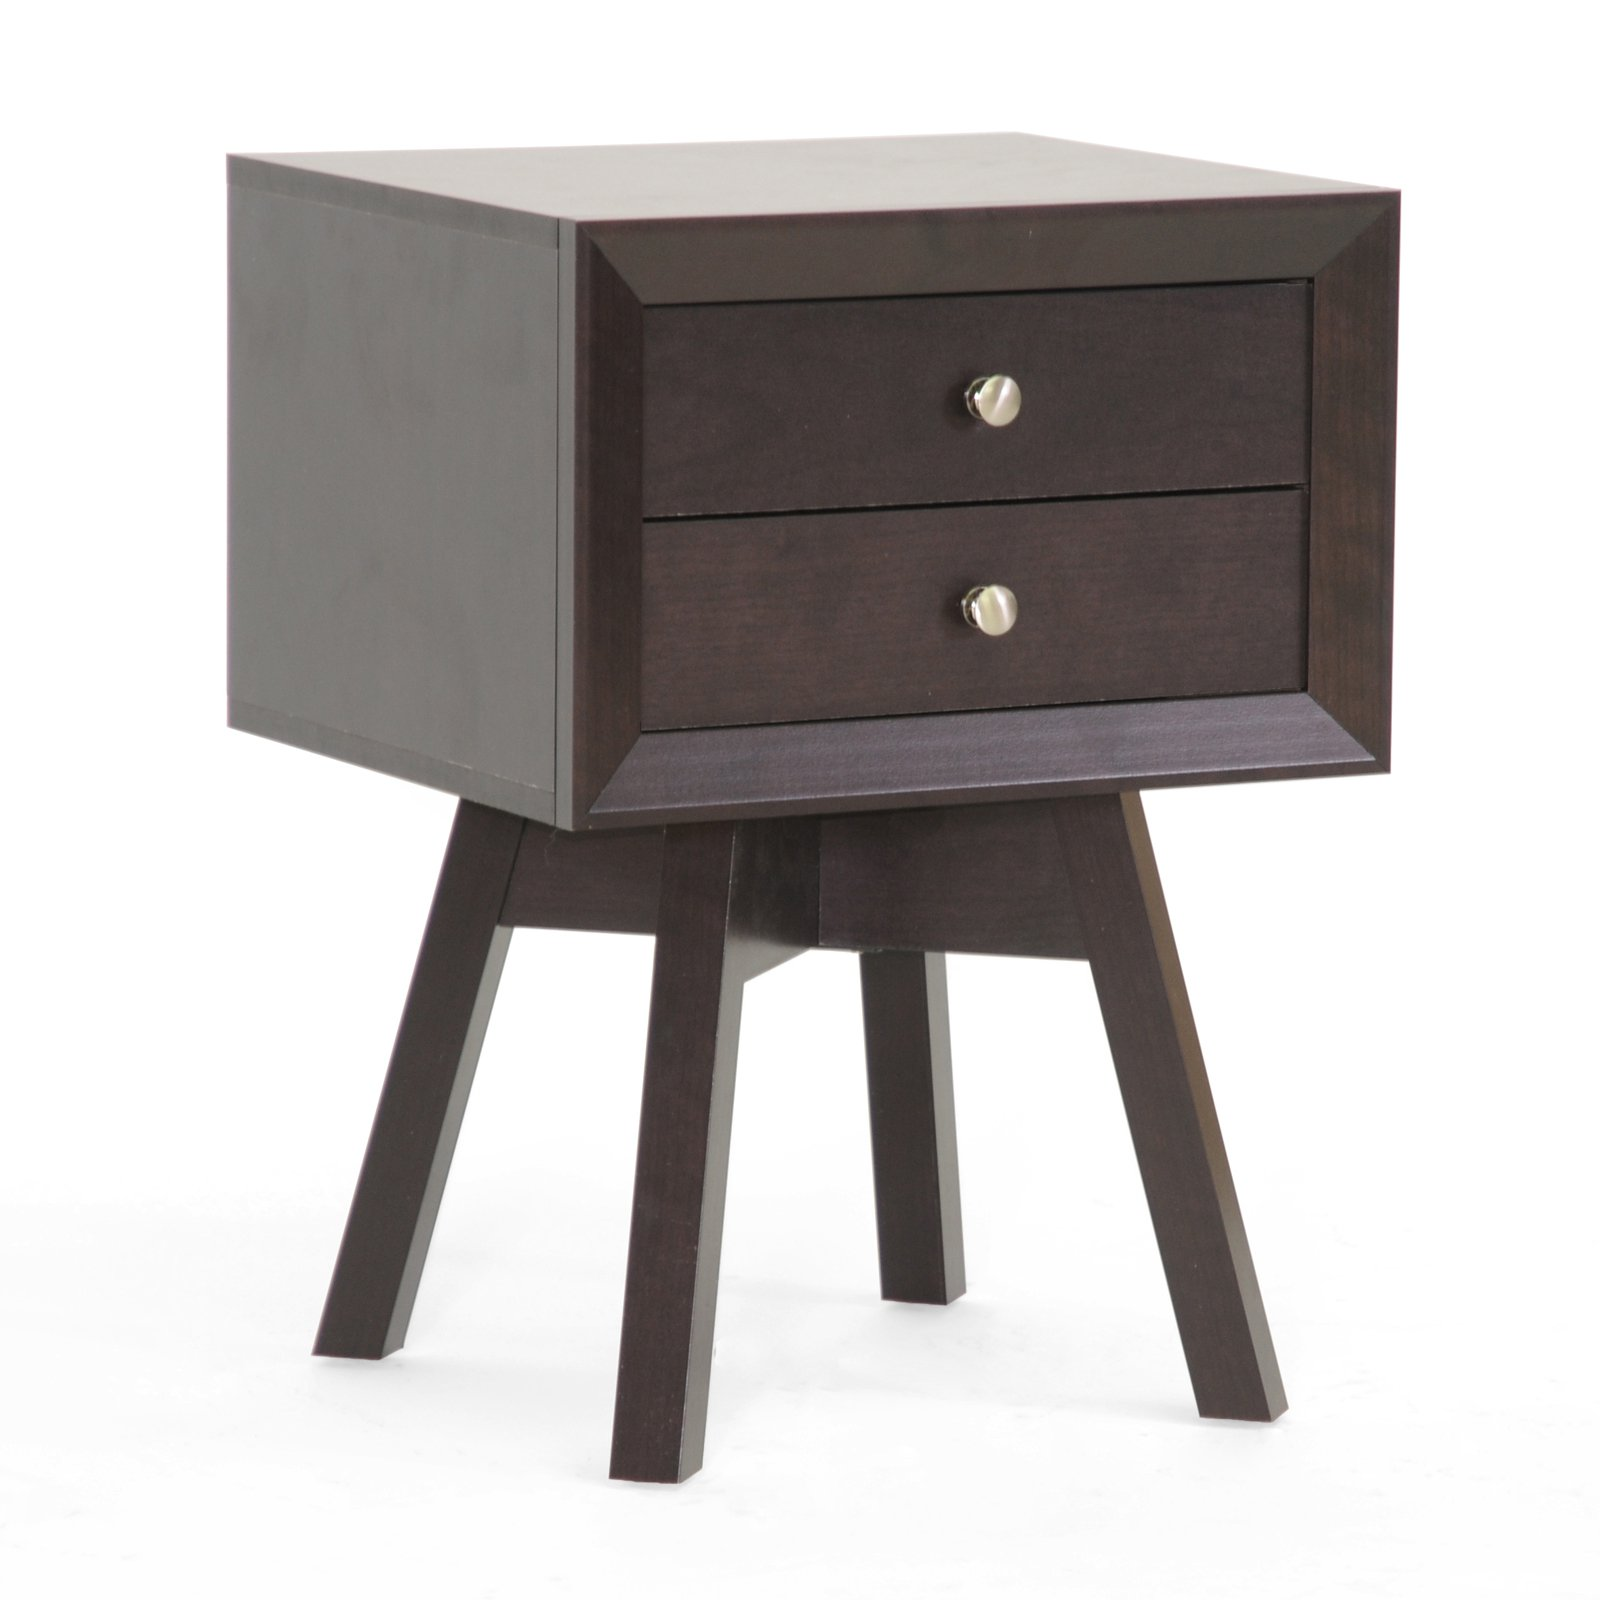 Baxton Studio Warwick 2 Drawer Nightstand